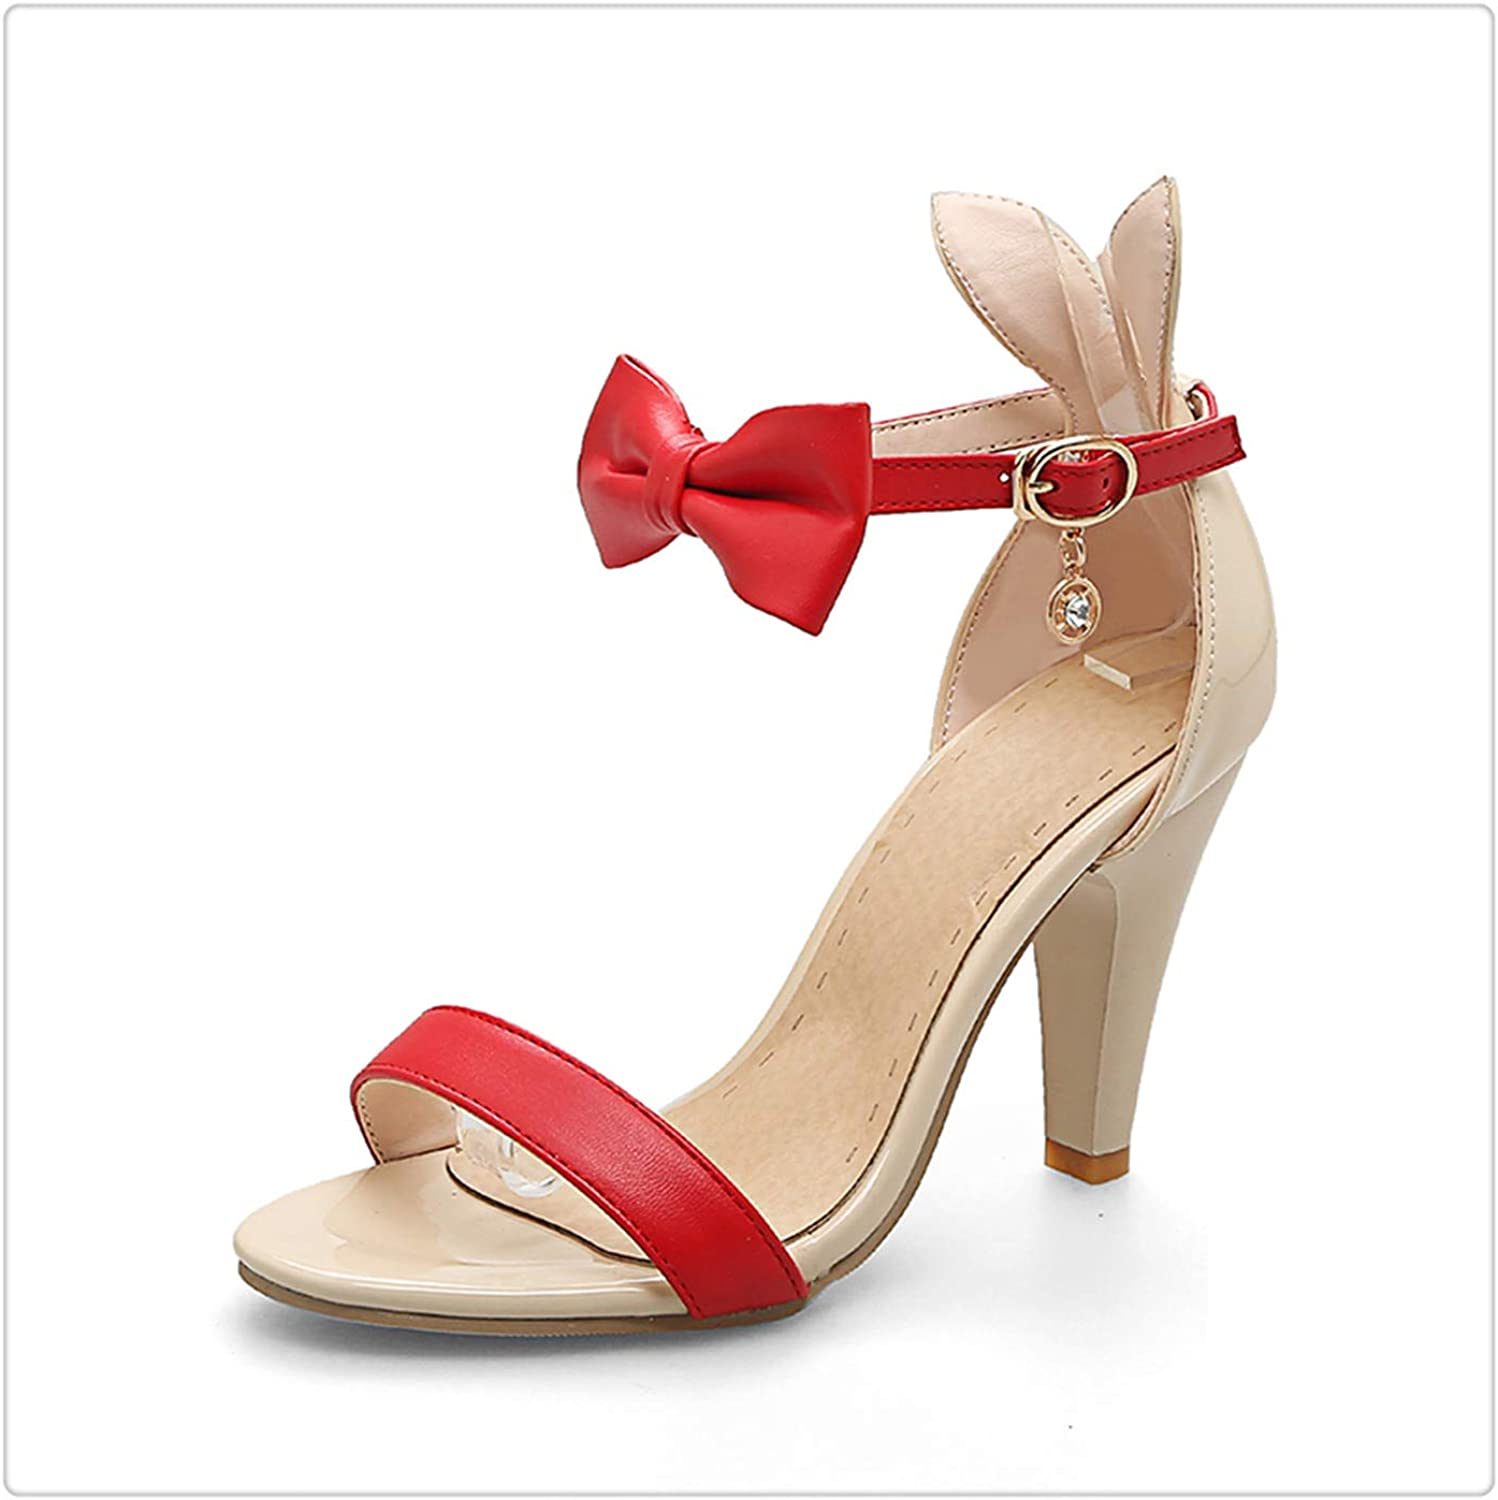 Msanlixian Large Size 32-43 Sweet Bow Ankle Strap high Heels Summer shoes Sandal Mixed color Party Wedding Sandals Women Red 10.5